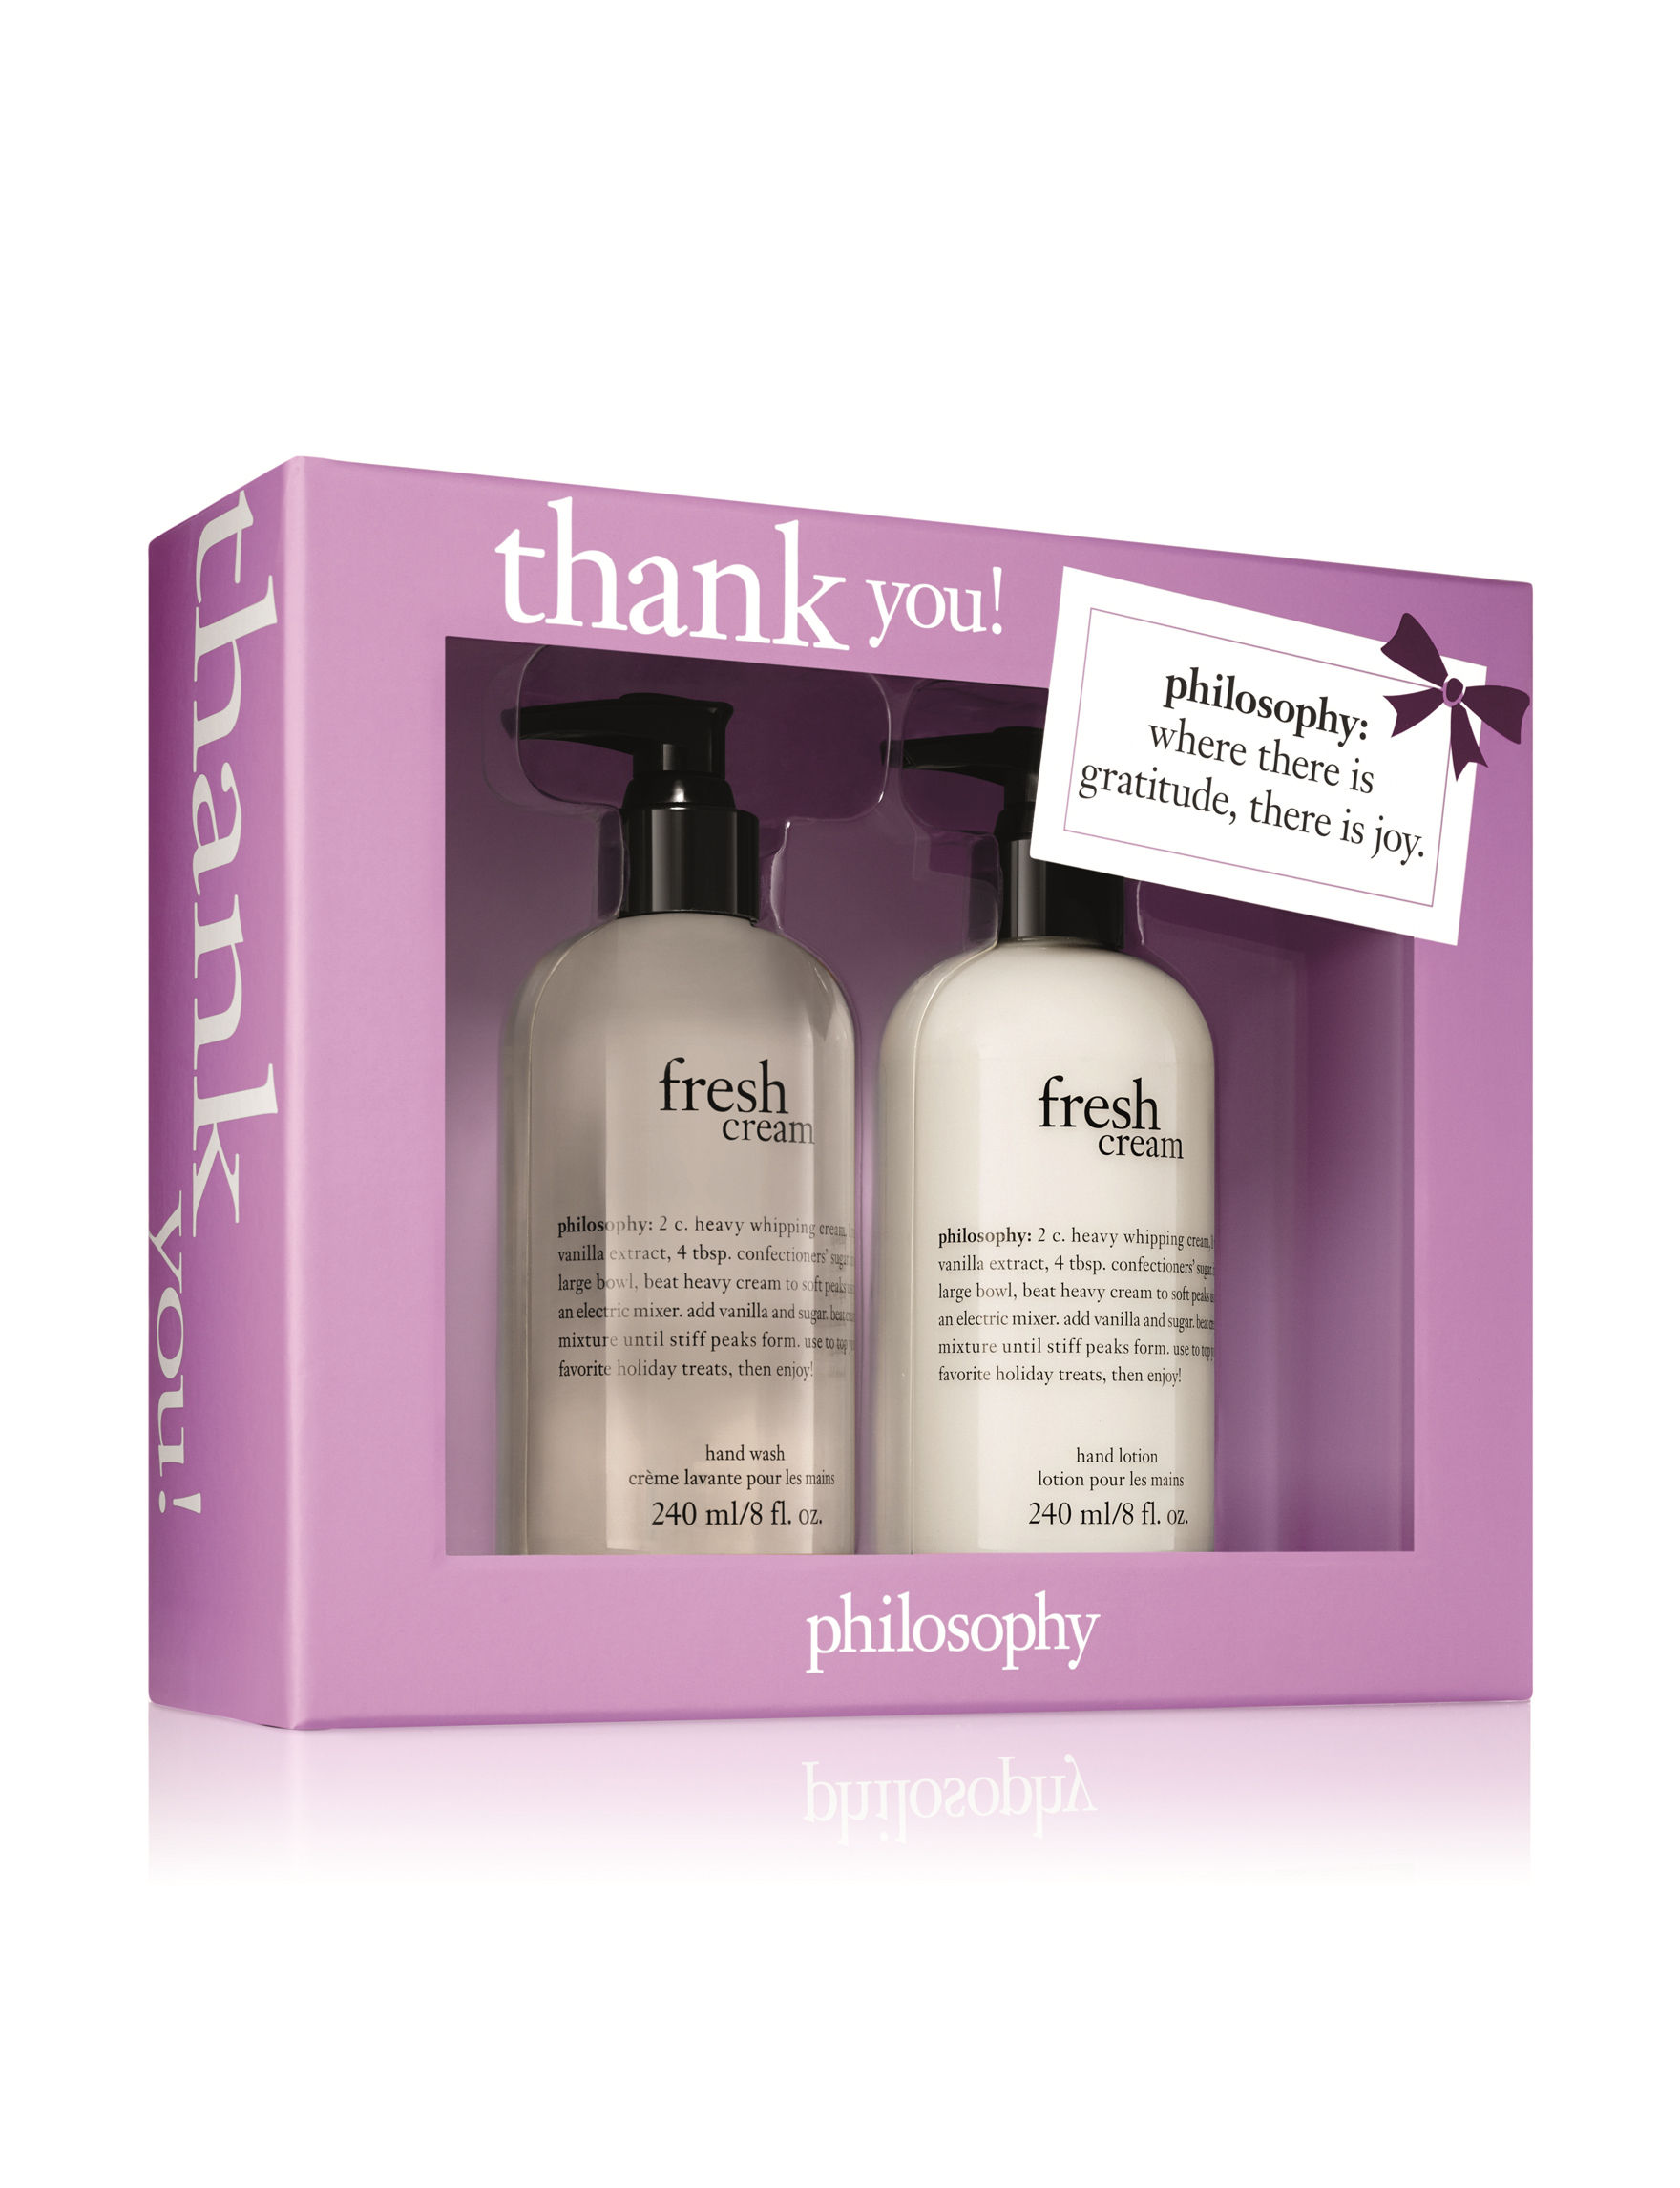 Philosophy pc thank you hand care duo gift set stage